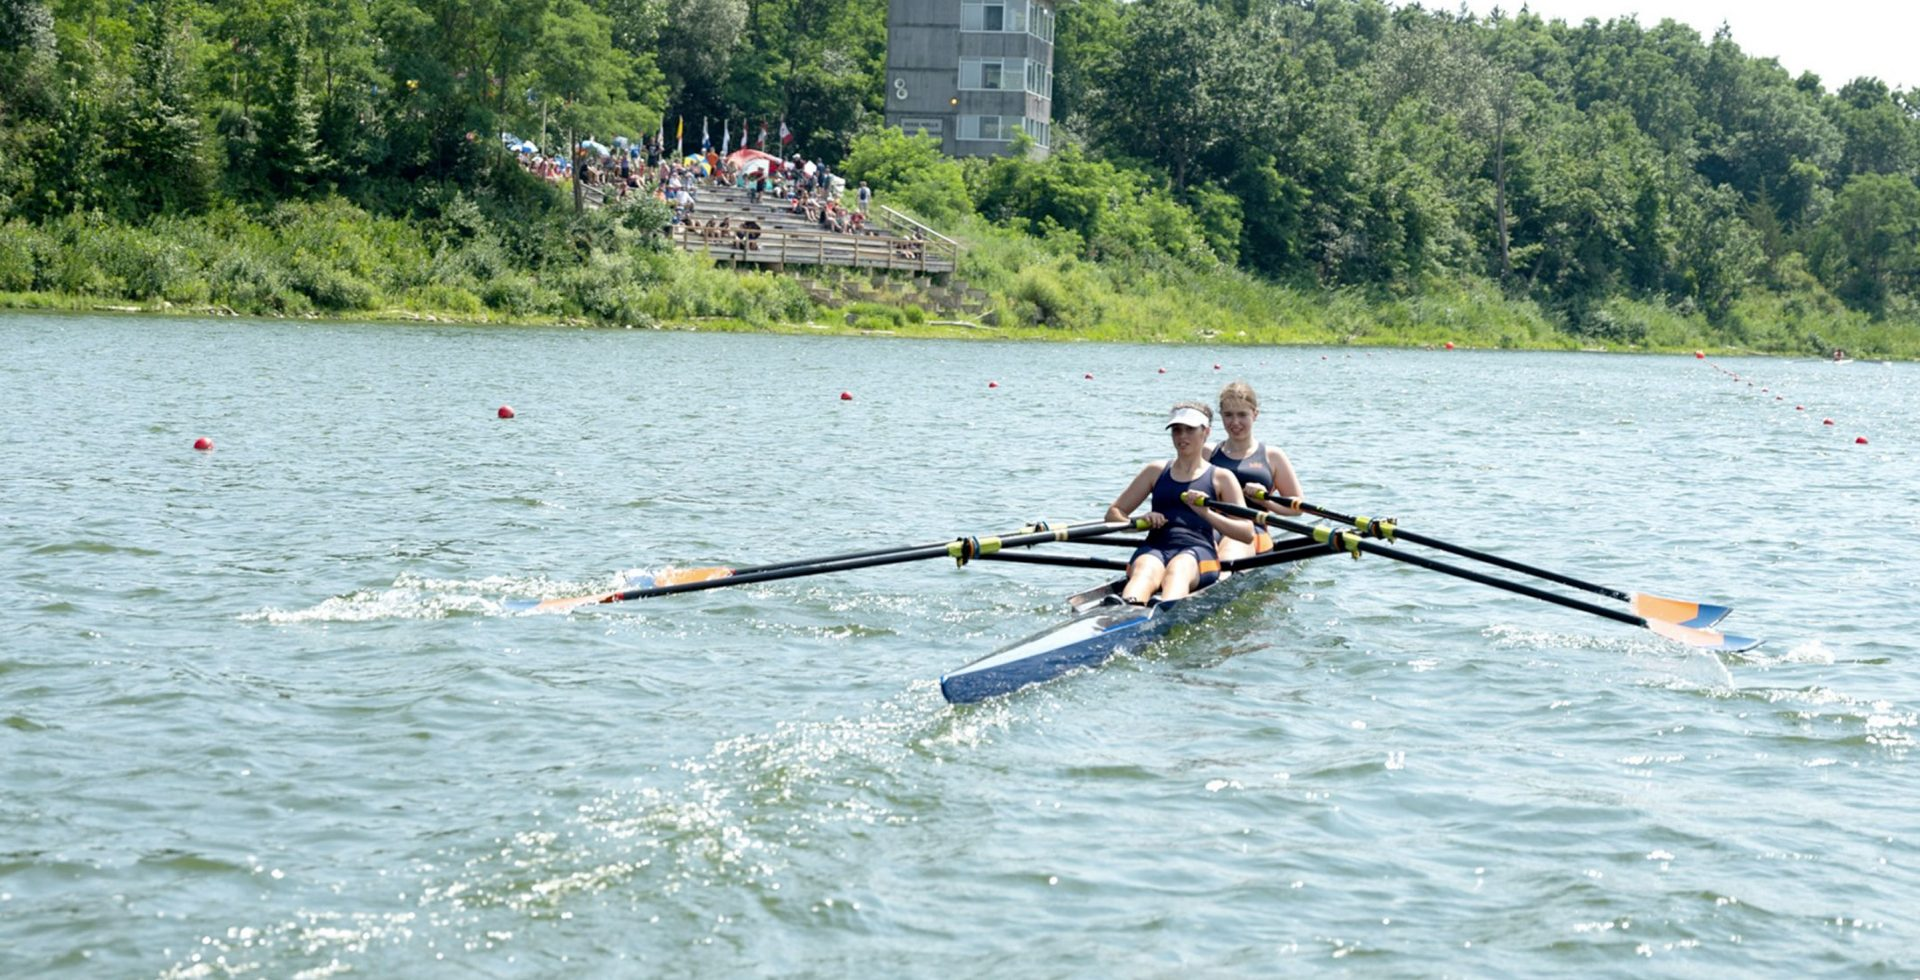 Regattas / Events